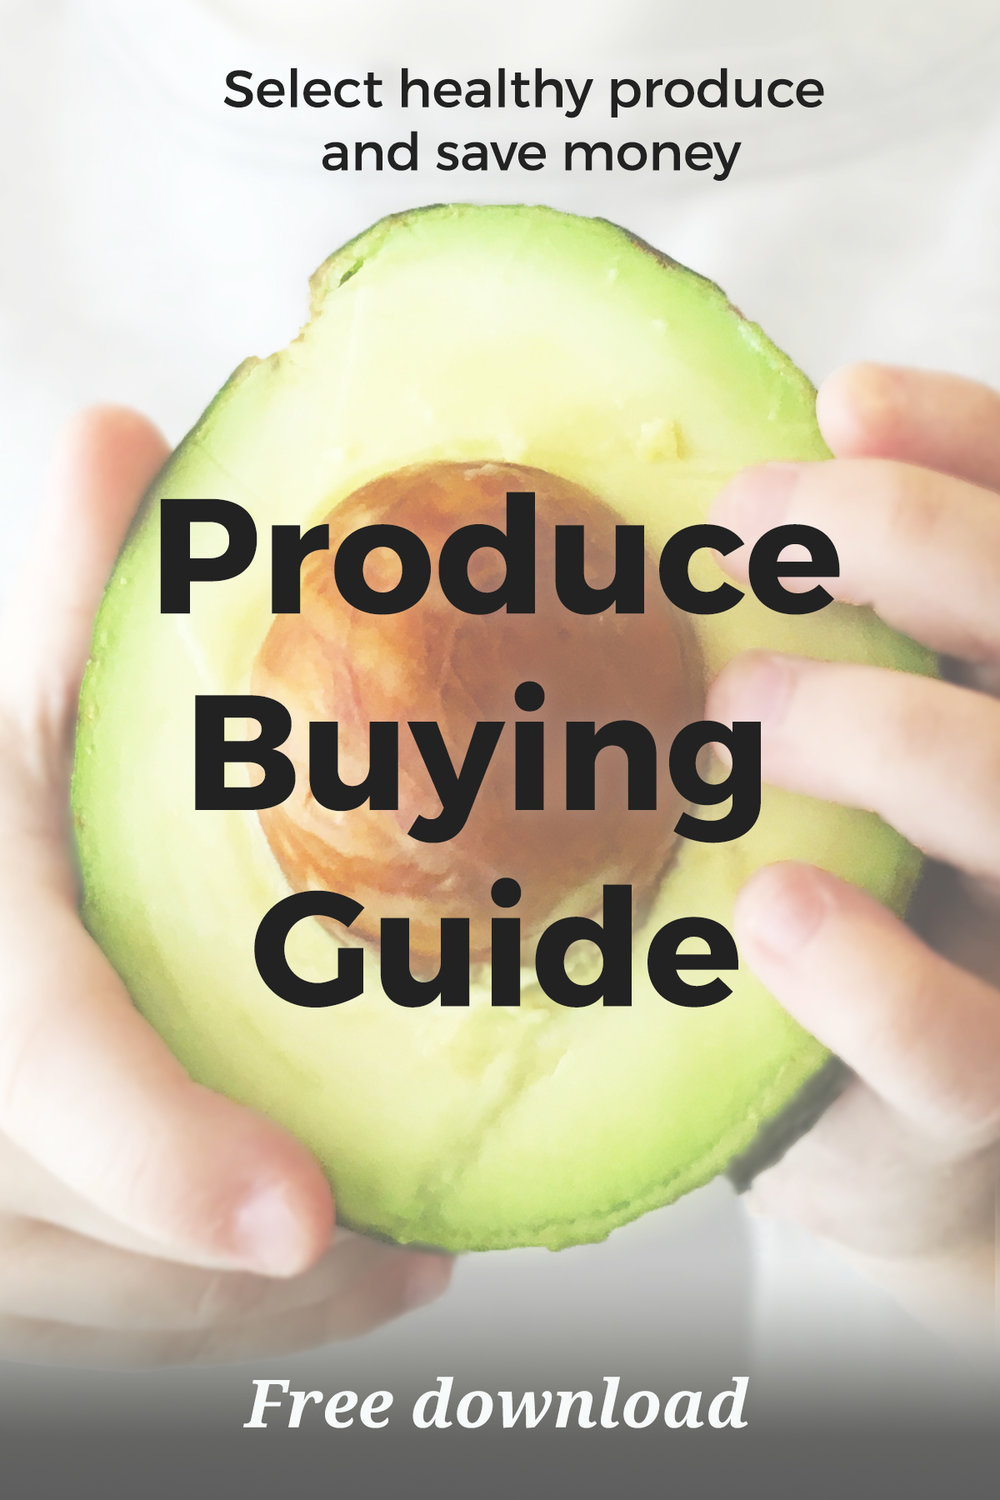 The Real Food Diet's Produce Buying Guide was made to help you carefully select safe produce at the grocery store. Now you can avoid pesticide danger with this free printable. For an easy shopping list on the go, simply download a copy to your phone. Such helpful information about pesticides at the link too!